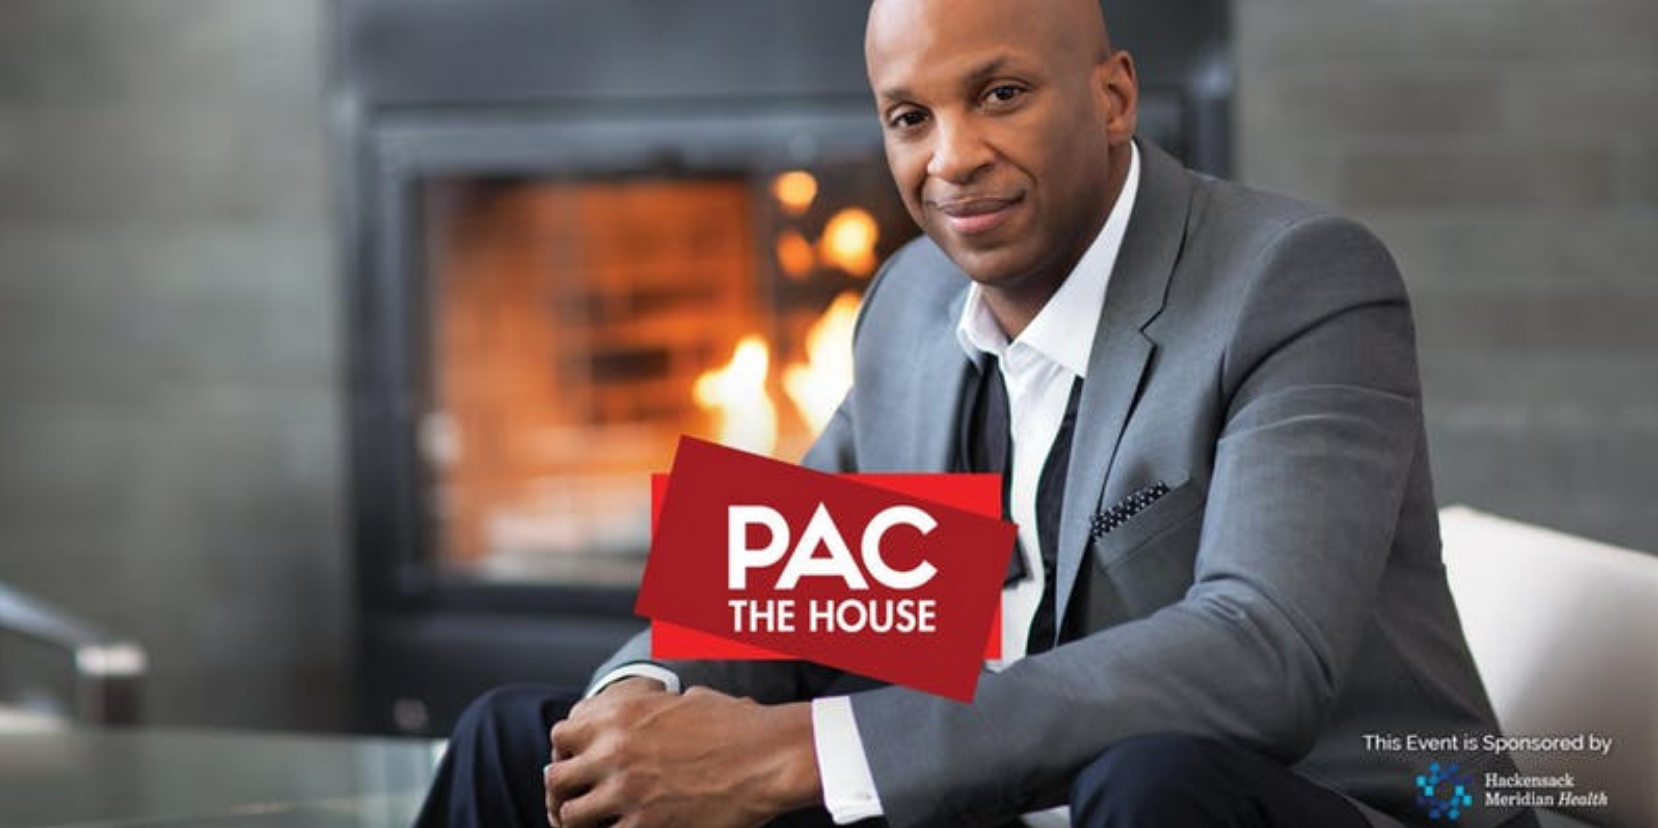 FireShot Capture 003 - Donnie McClurkin - PAC the House Series — The Urban Professionals Net_ - theupn.squarespace.com.png